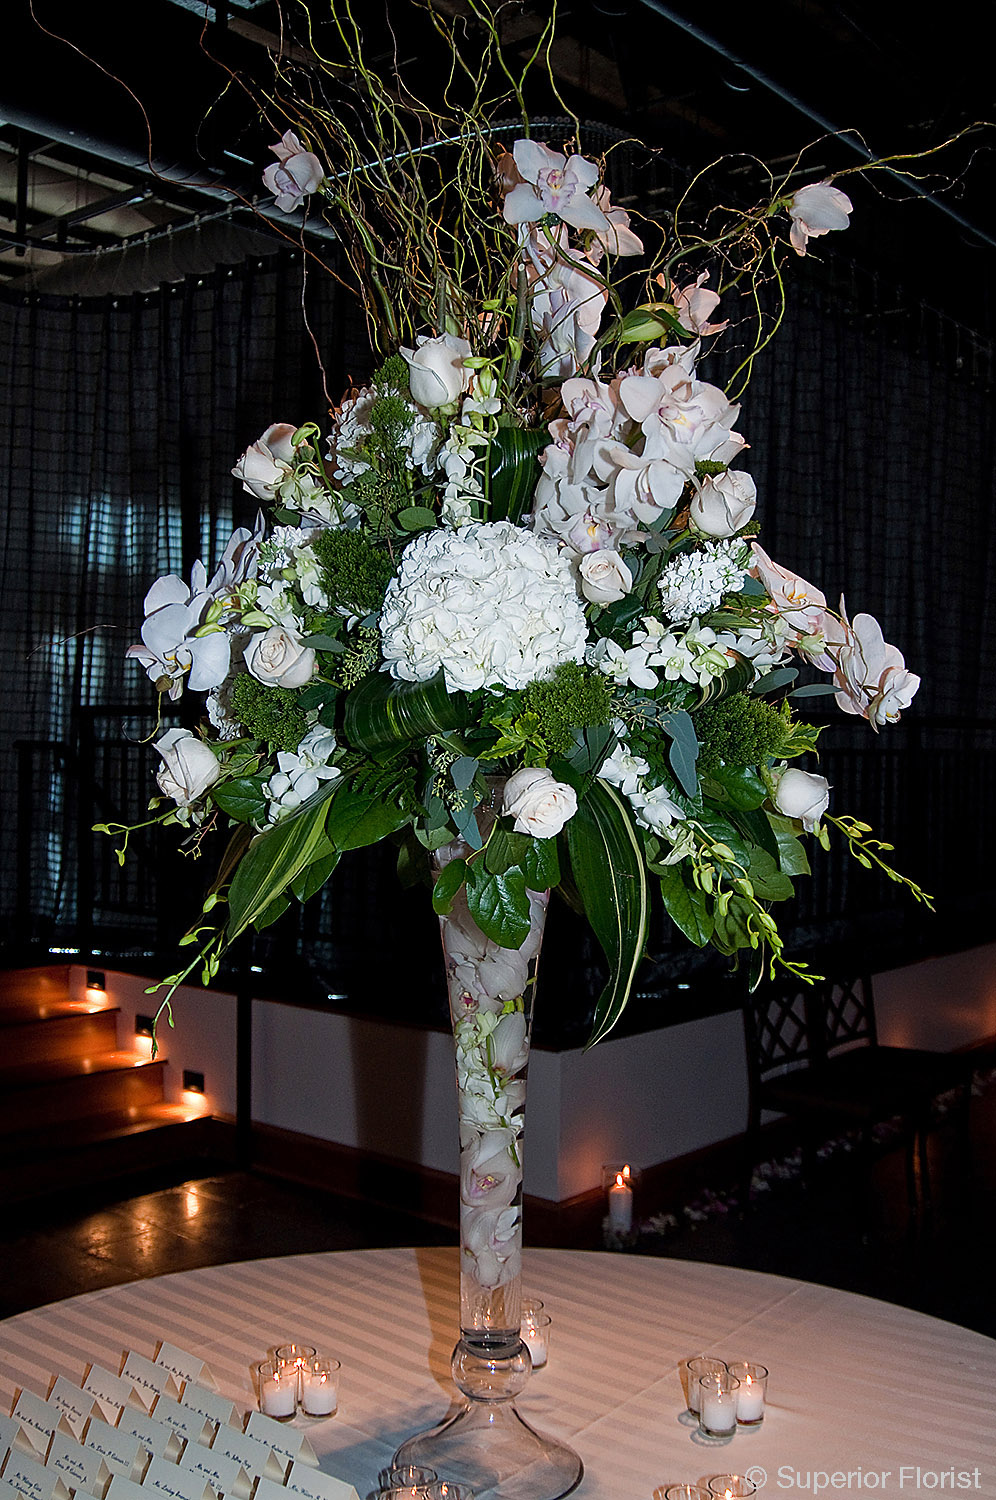 Superior Florist – Weddings – Escort Tables: Large bouquet of curly willows, Hydrangeas and Dendrobiums in a clear glass fluted vase with submerged Cymbidium orchids. The Lighthouse at Chelsea Piers, NYC.